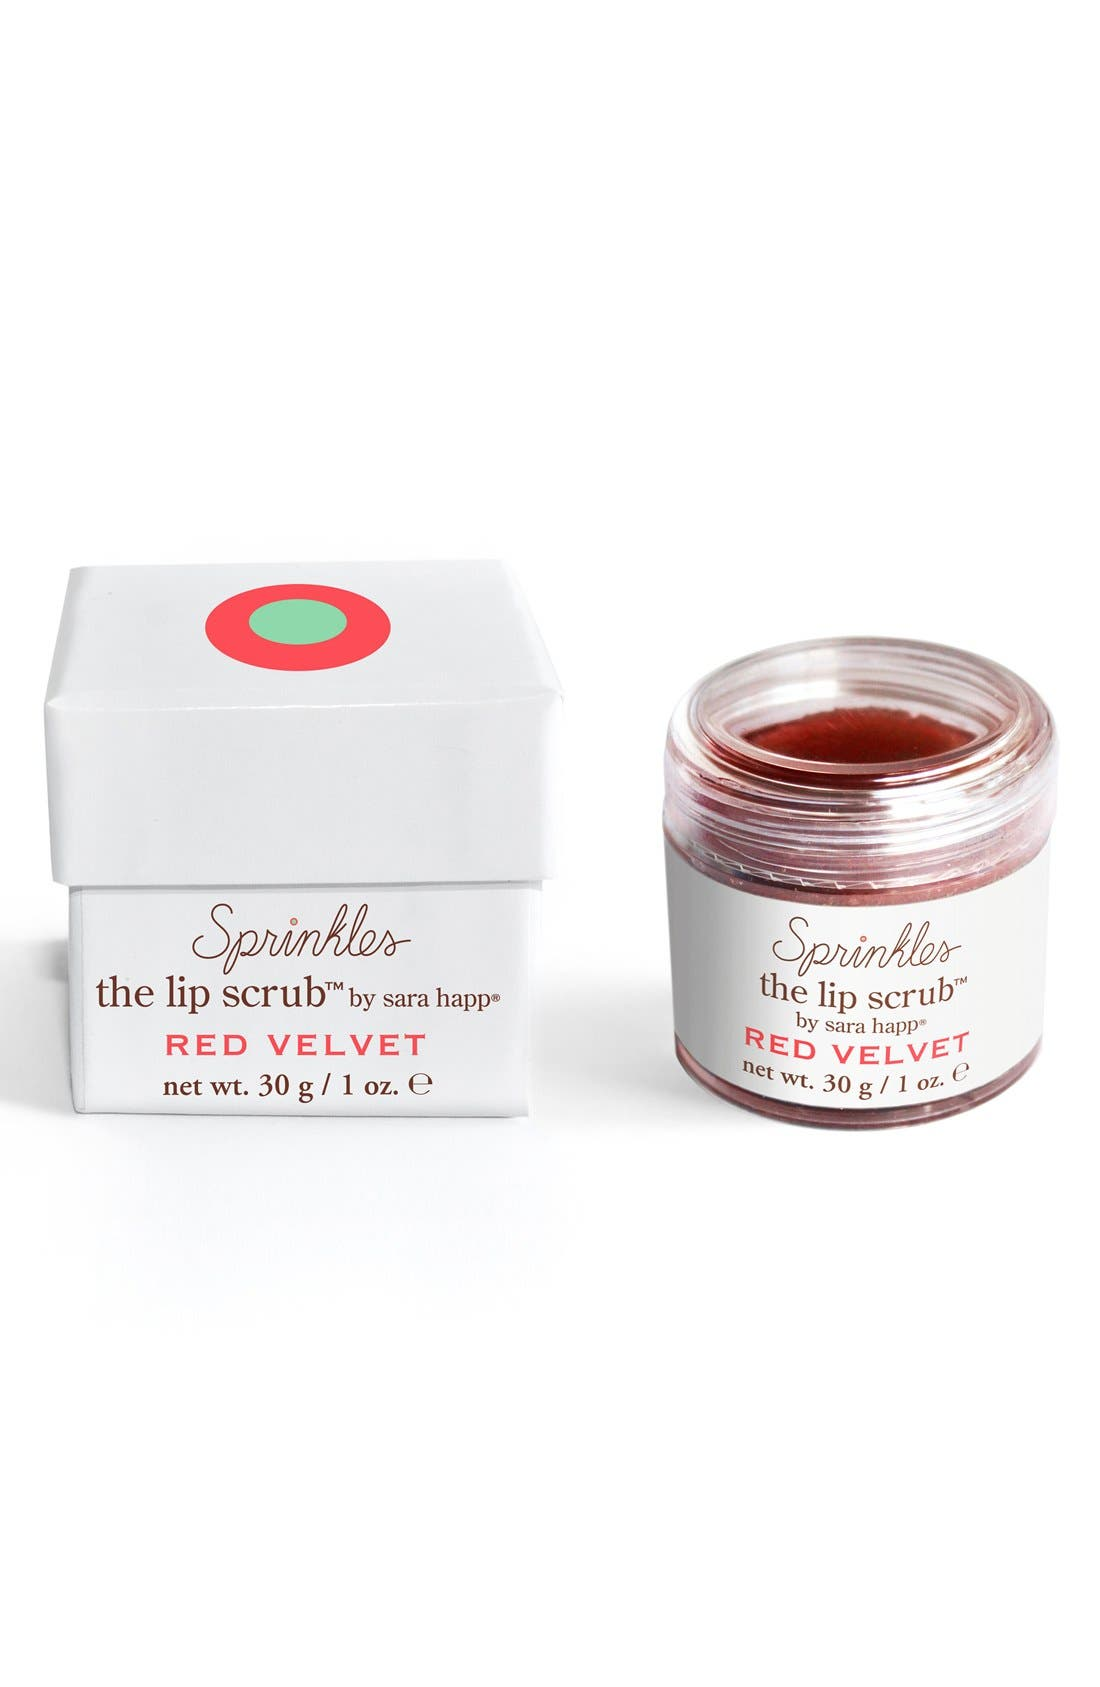 sara happ® The Lip Scrub™ Sprinkles Red Velvet Lip Exfoliator (Limited Edition)